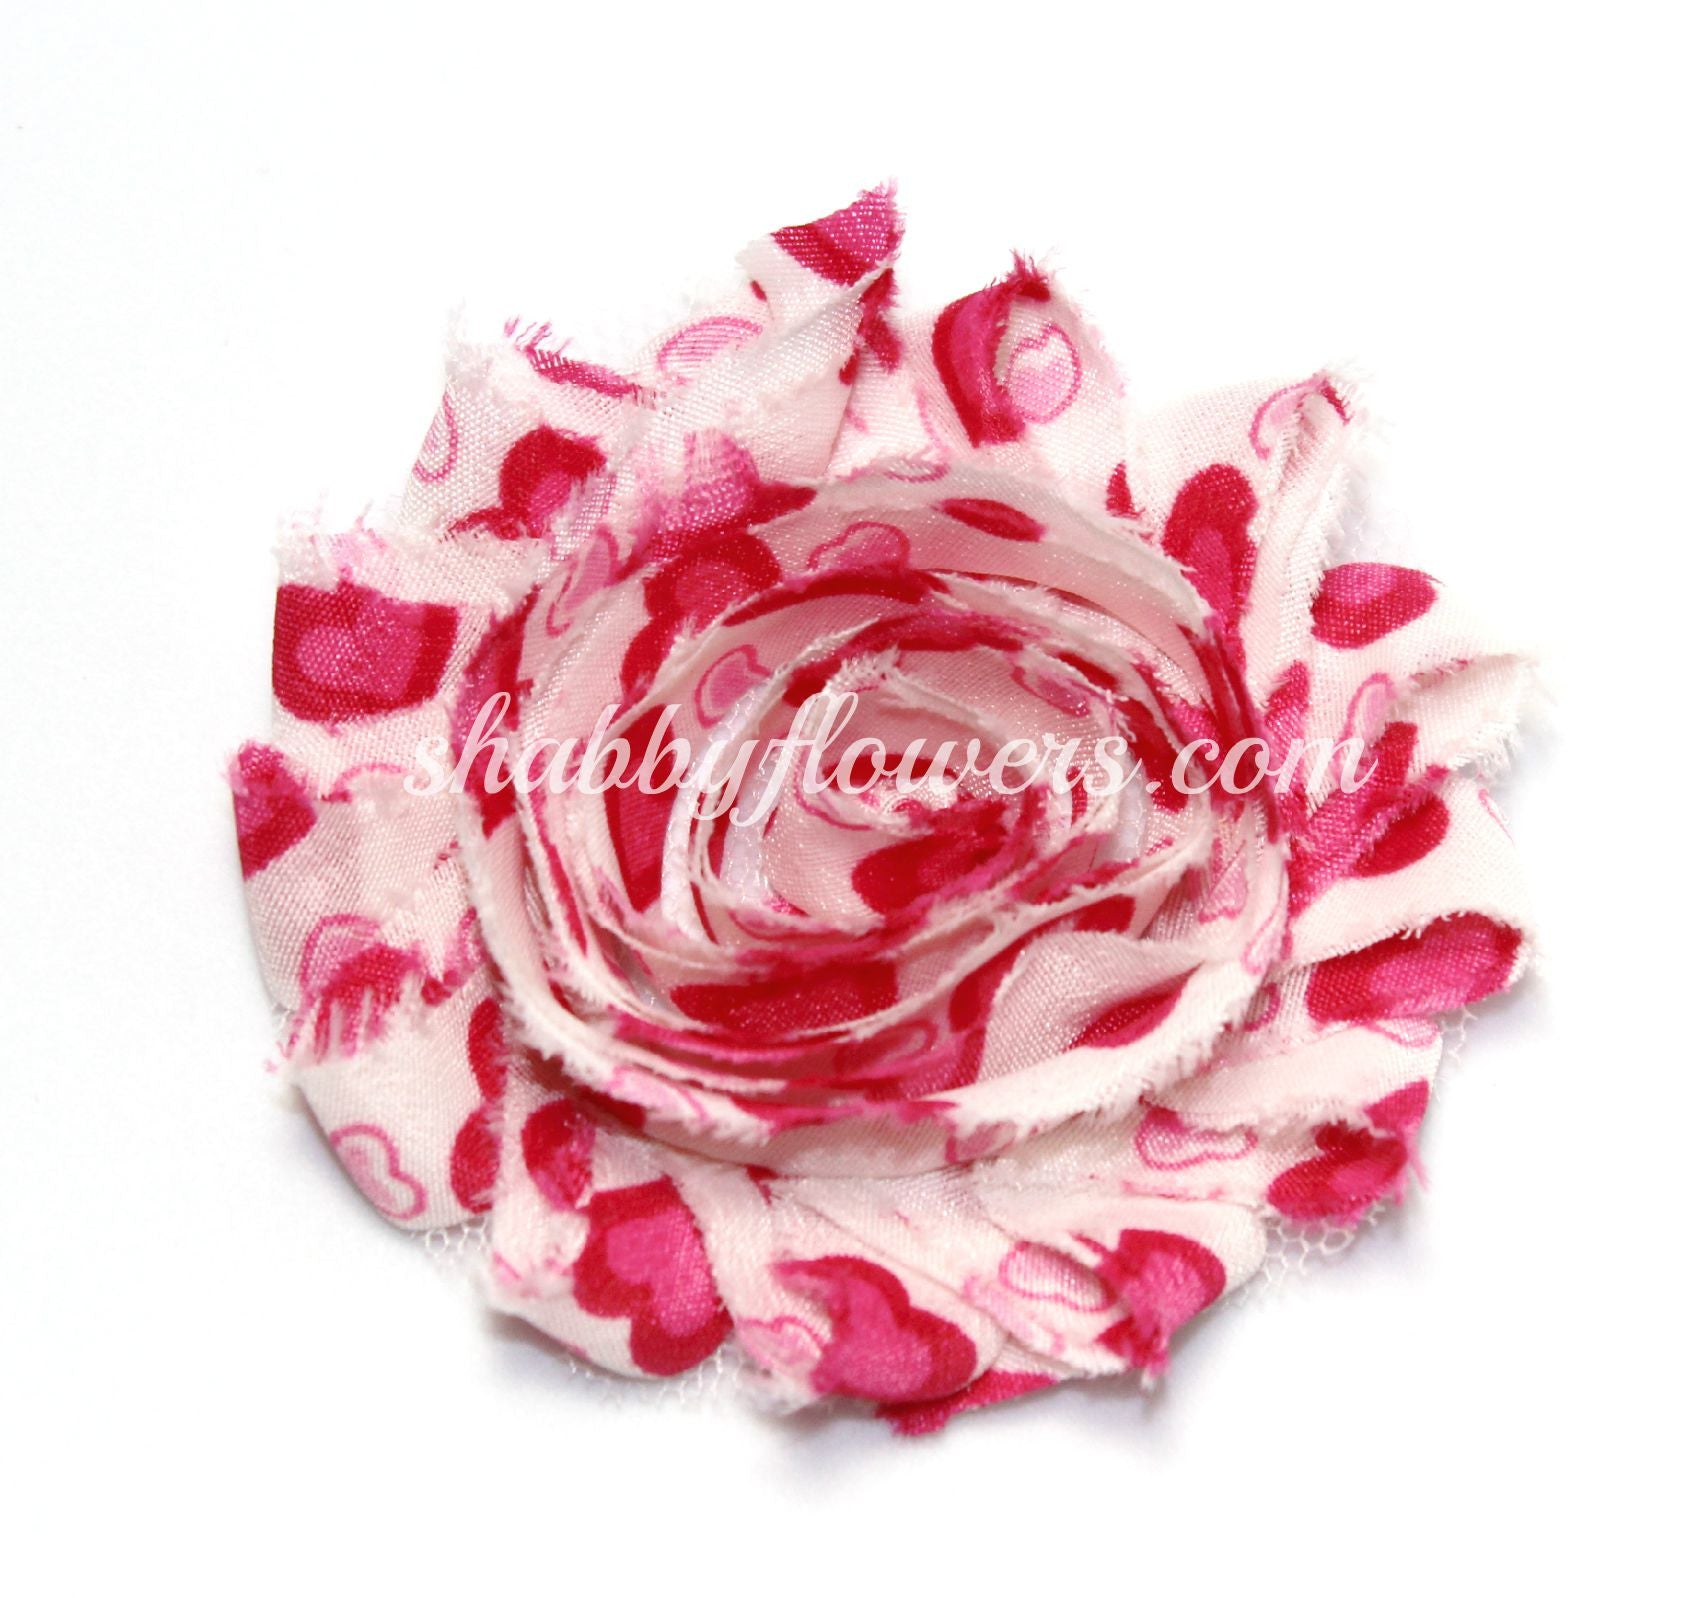 Shabby Chiffon Flower - Hot Pink Valentine Hearts - shabbyflowers.com